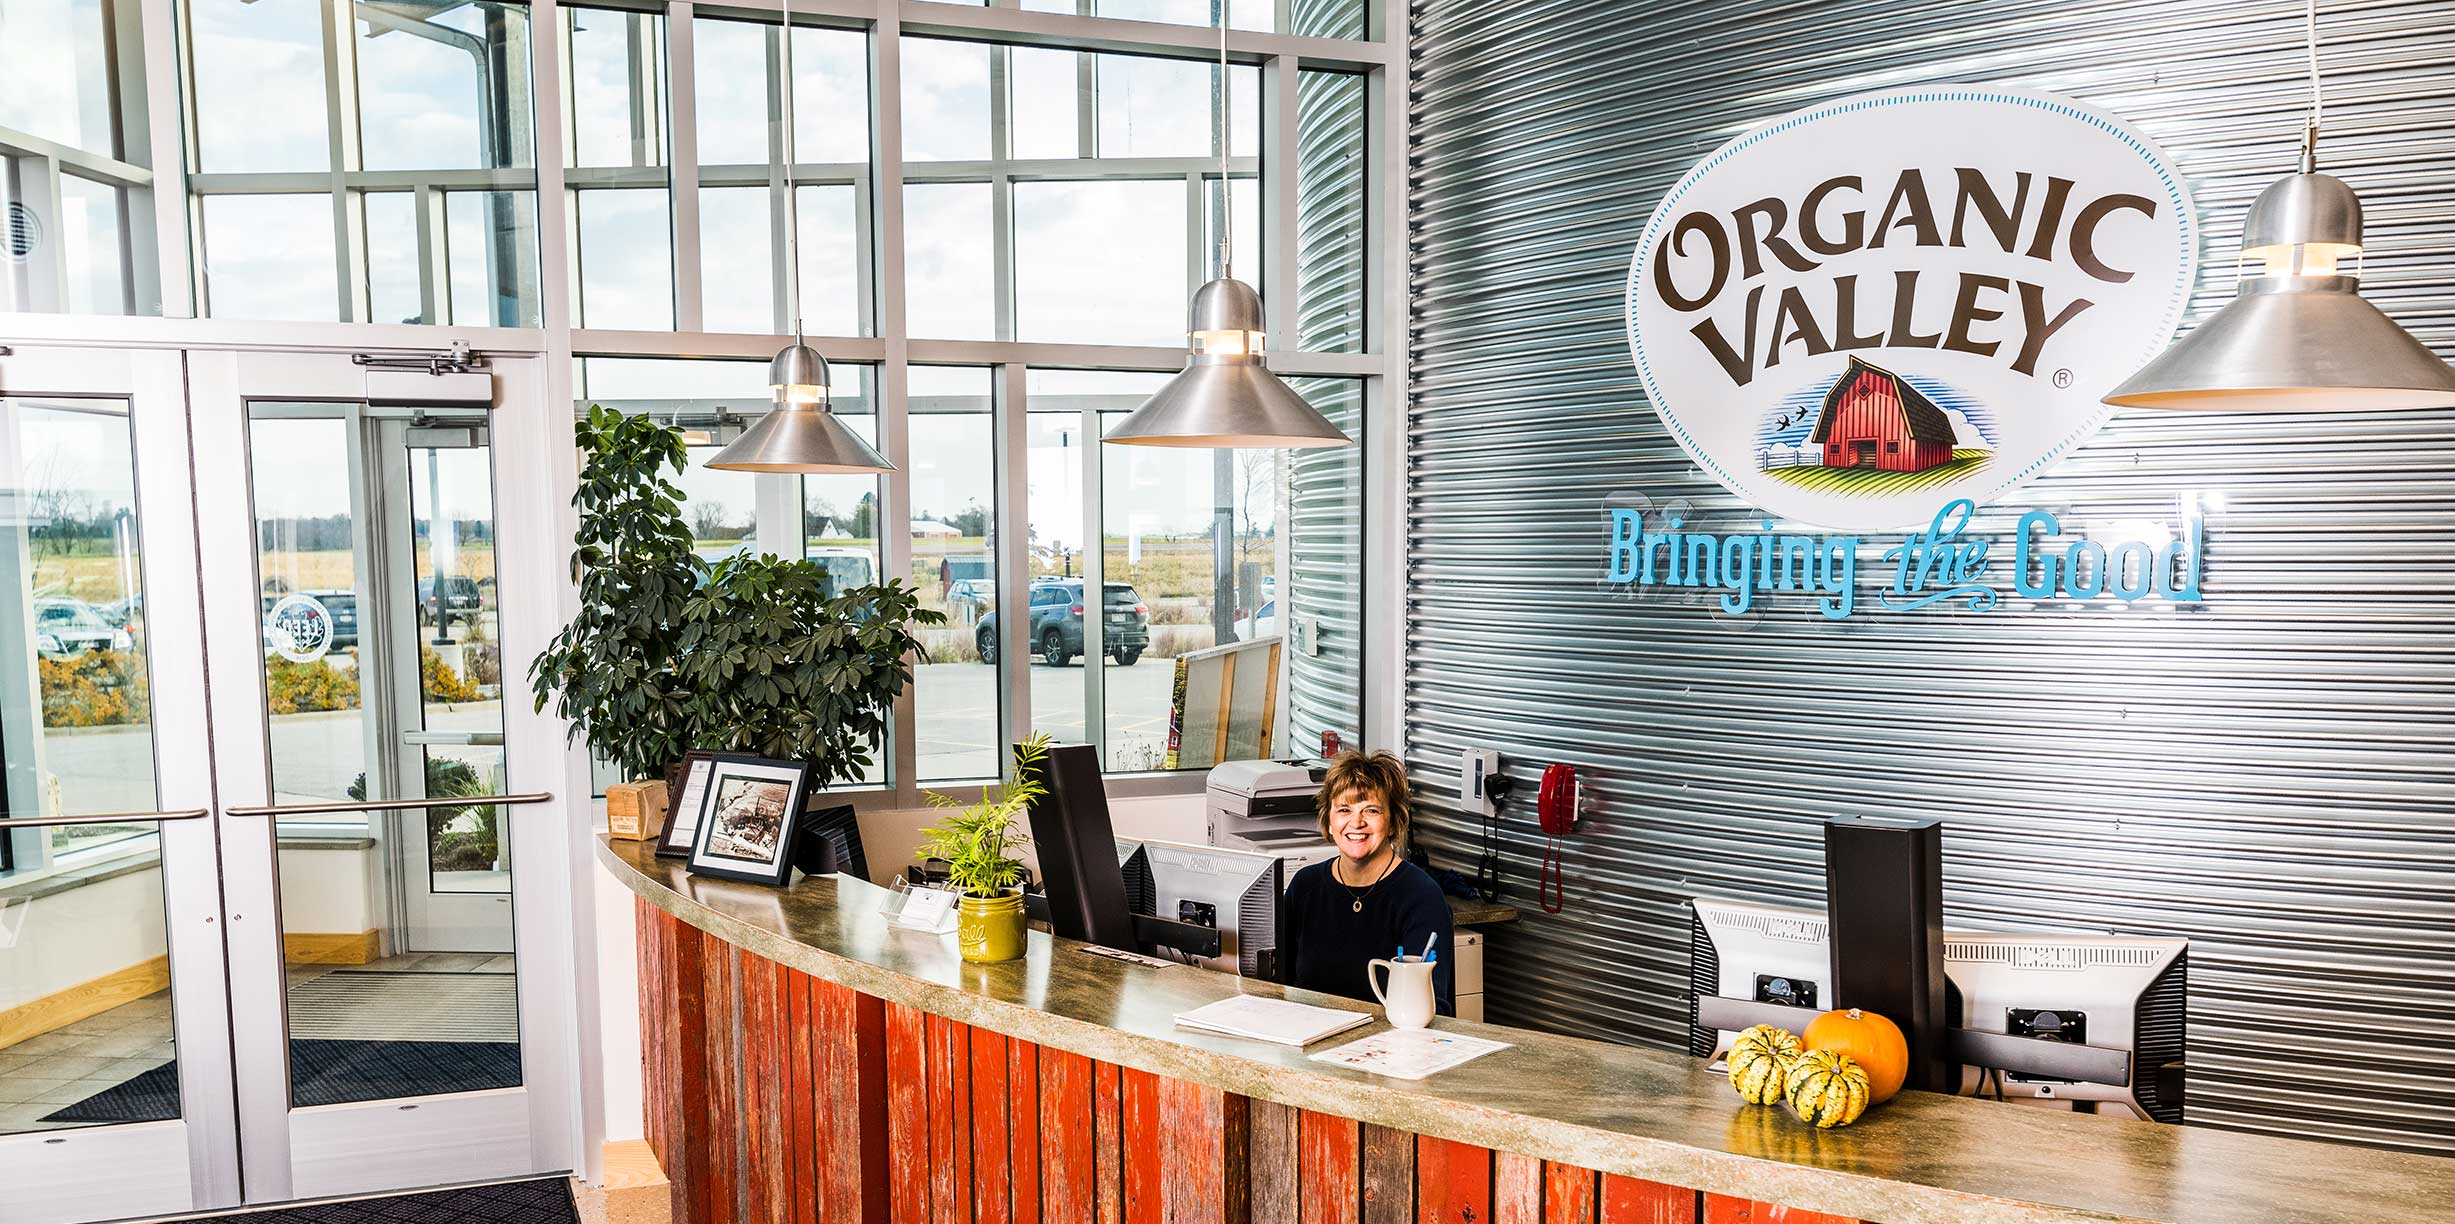 Organic Valley Exceeds $1.1 Billion in Sales for Fourth Consecutive Year